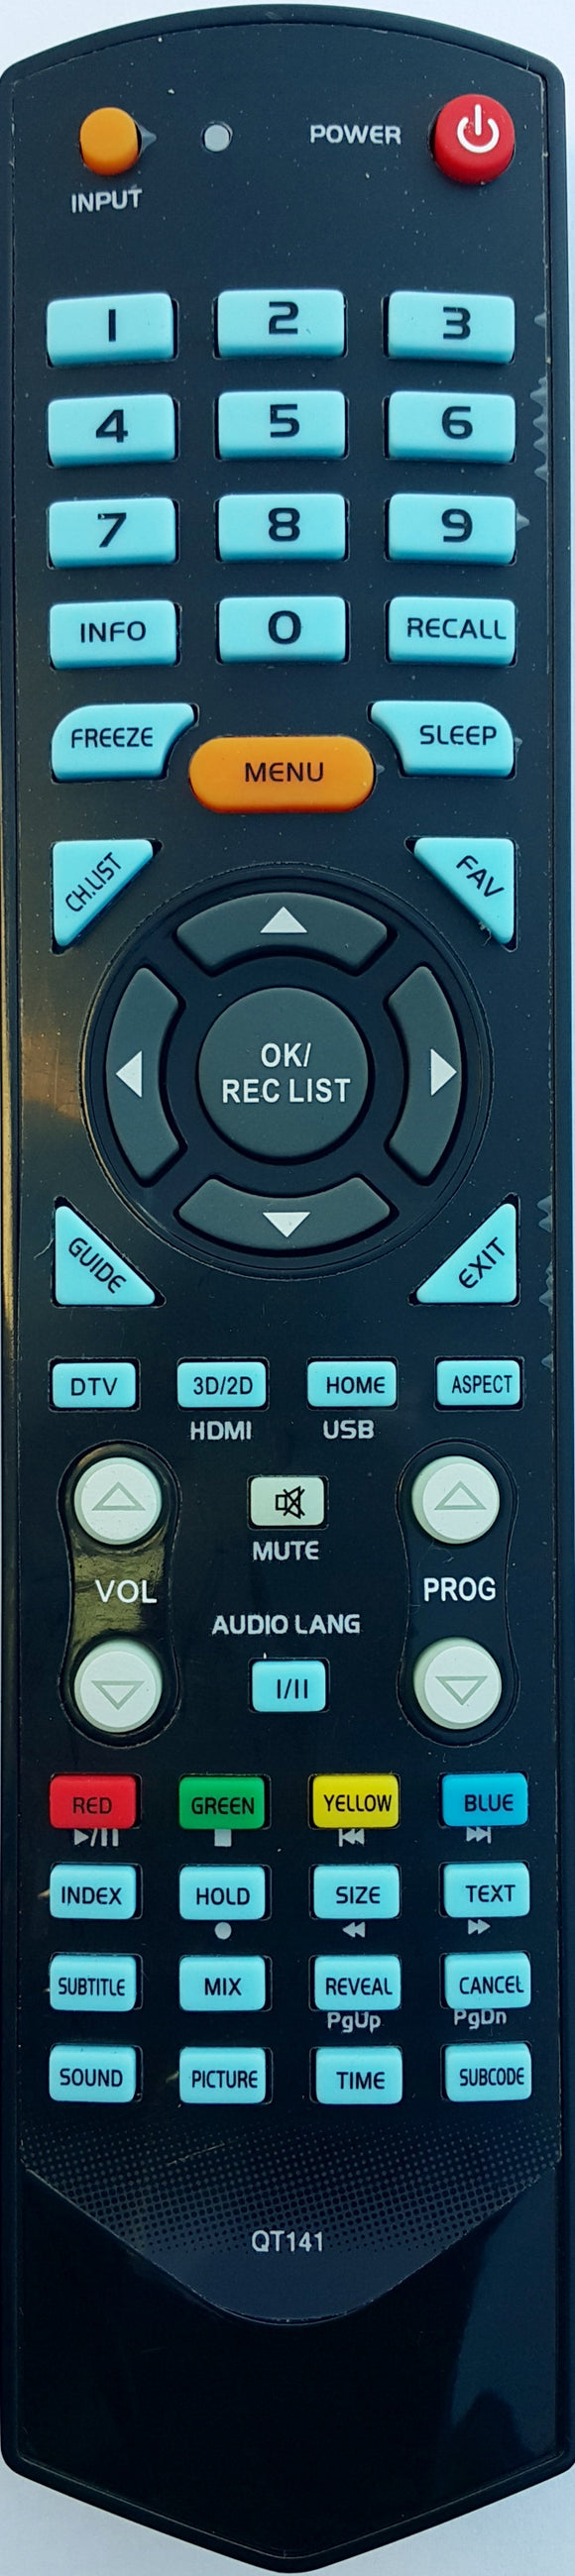 REPLACEMENT SONIQ REMOTE CONTROL QT141 - E46Z10A E46Z11A E55Z11A E55Z11A-AU TV - Remote Control Warehouse